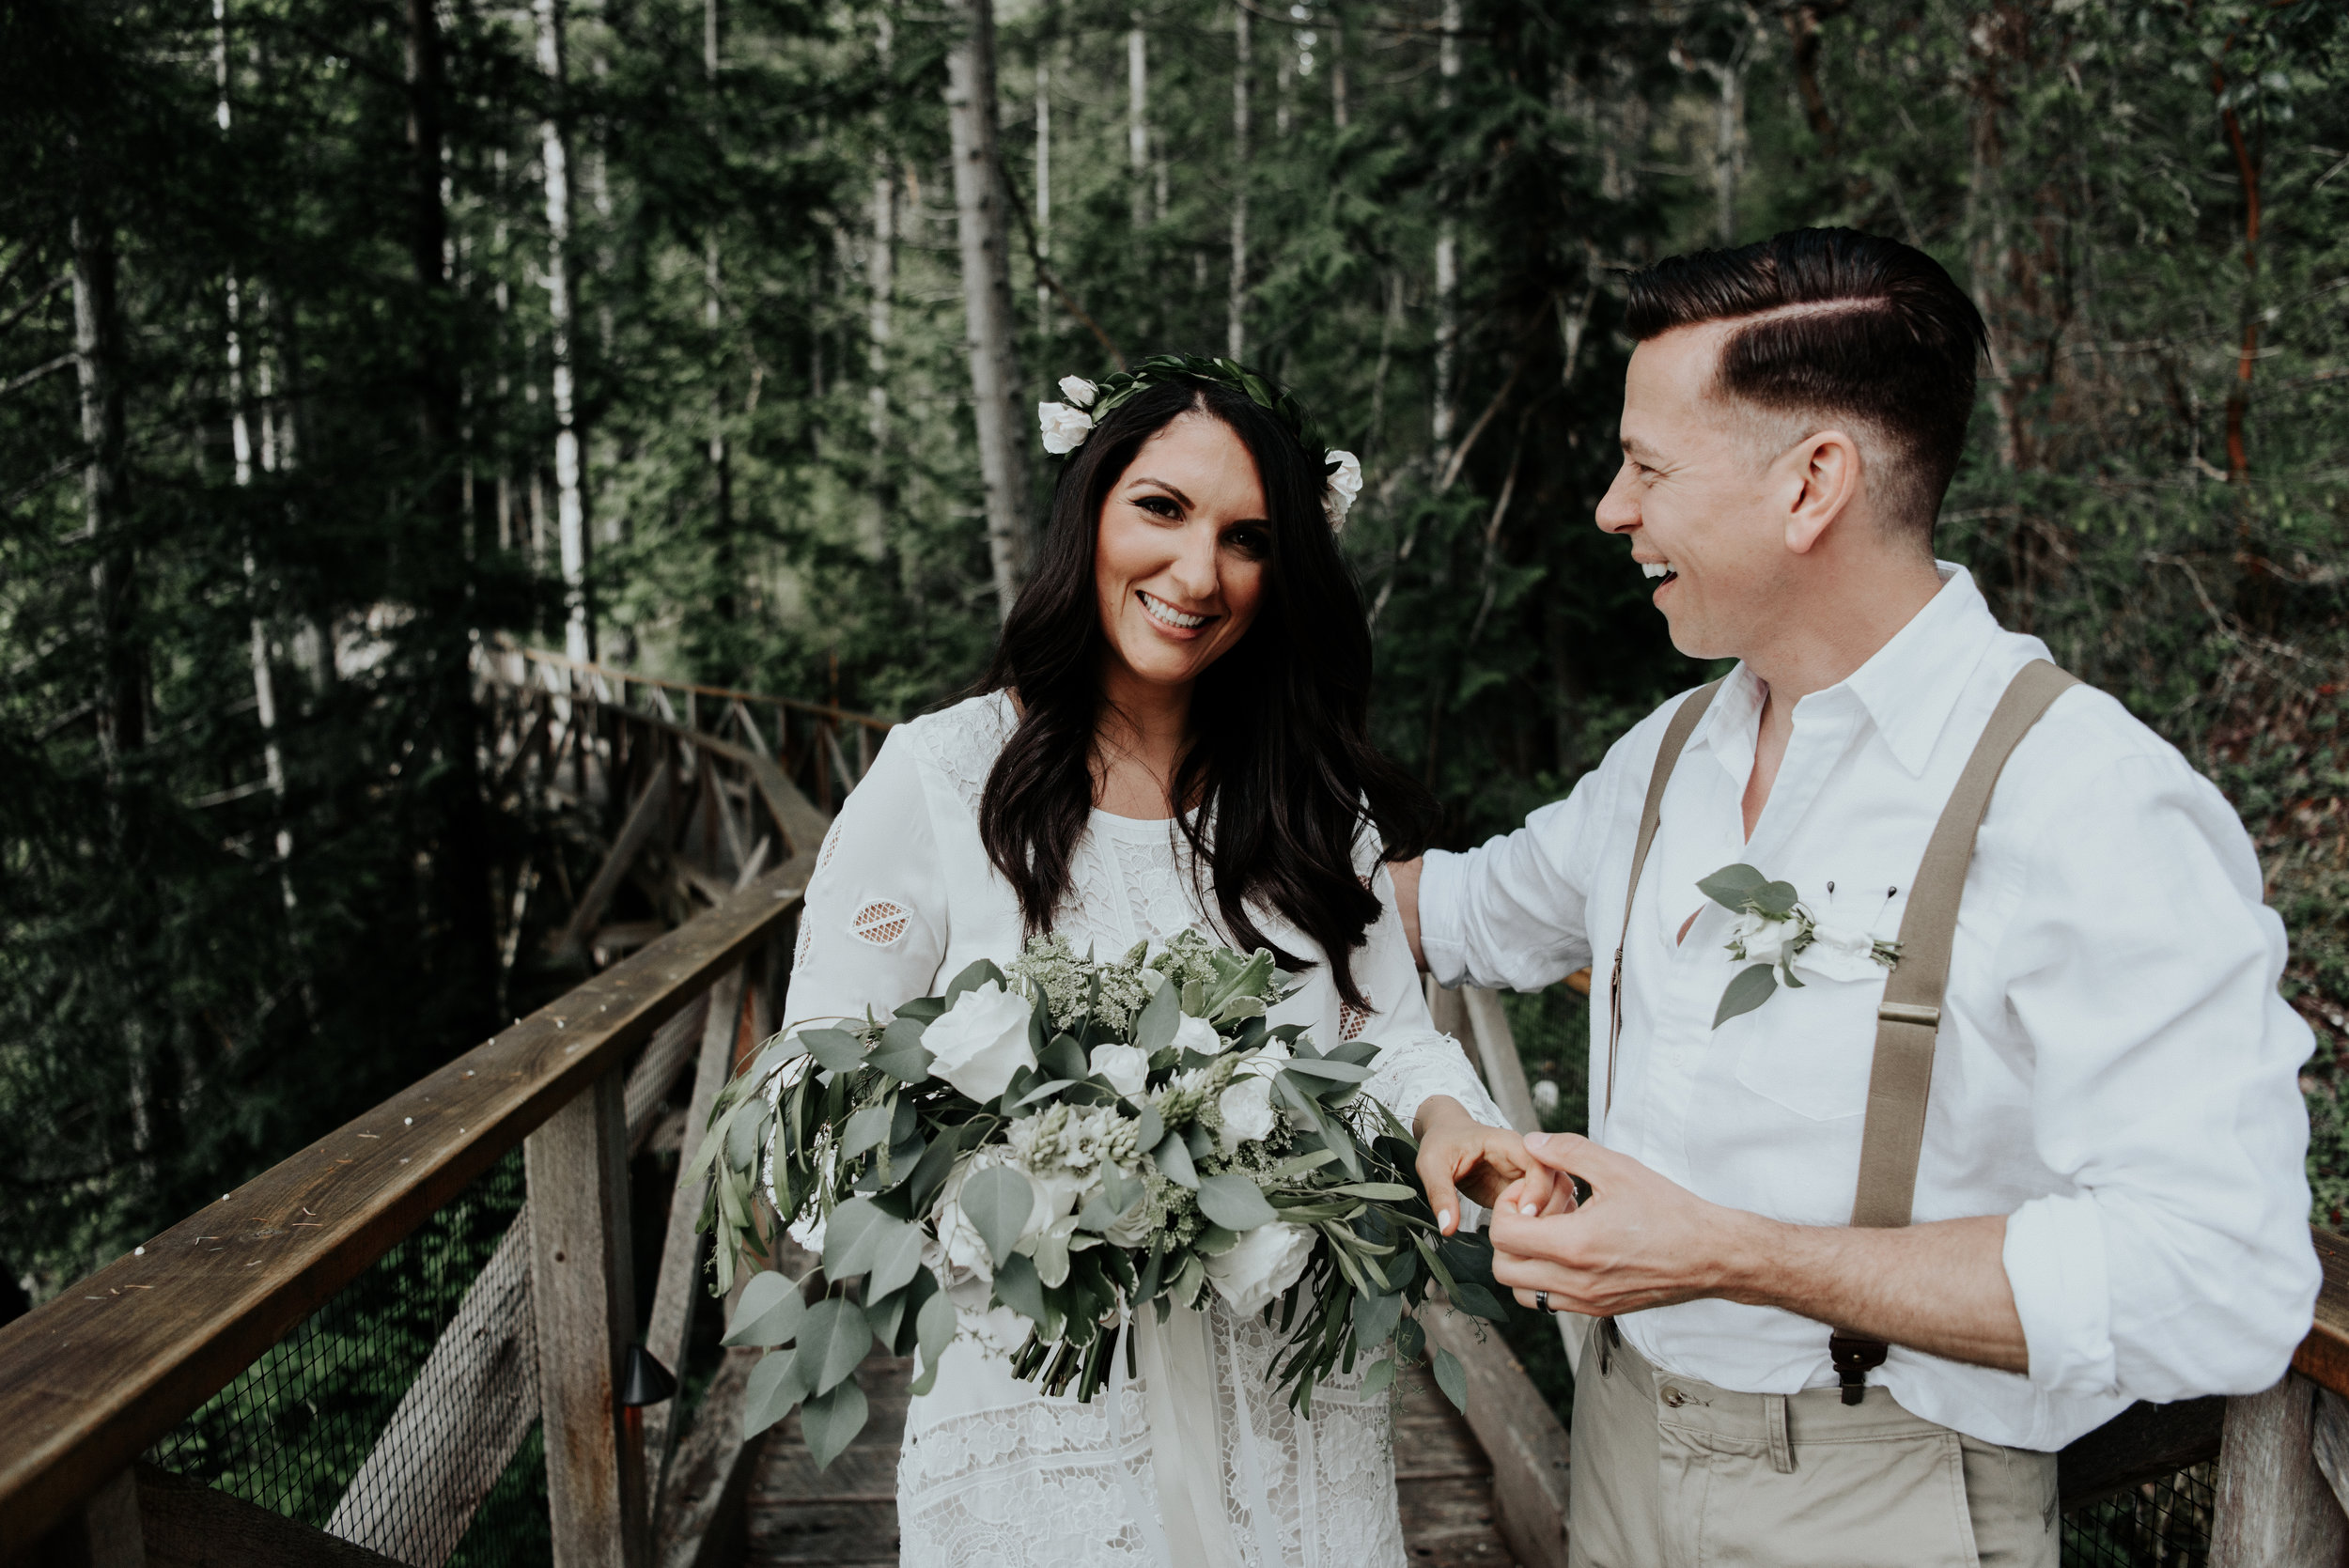 Ashley + Jeff - Rockwater Resort Elopement - Sunshine Coast BC Photographer - Laura Olson Photography-3966.jpg